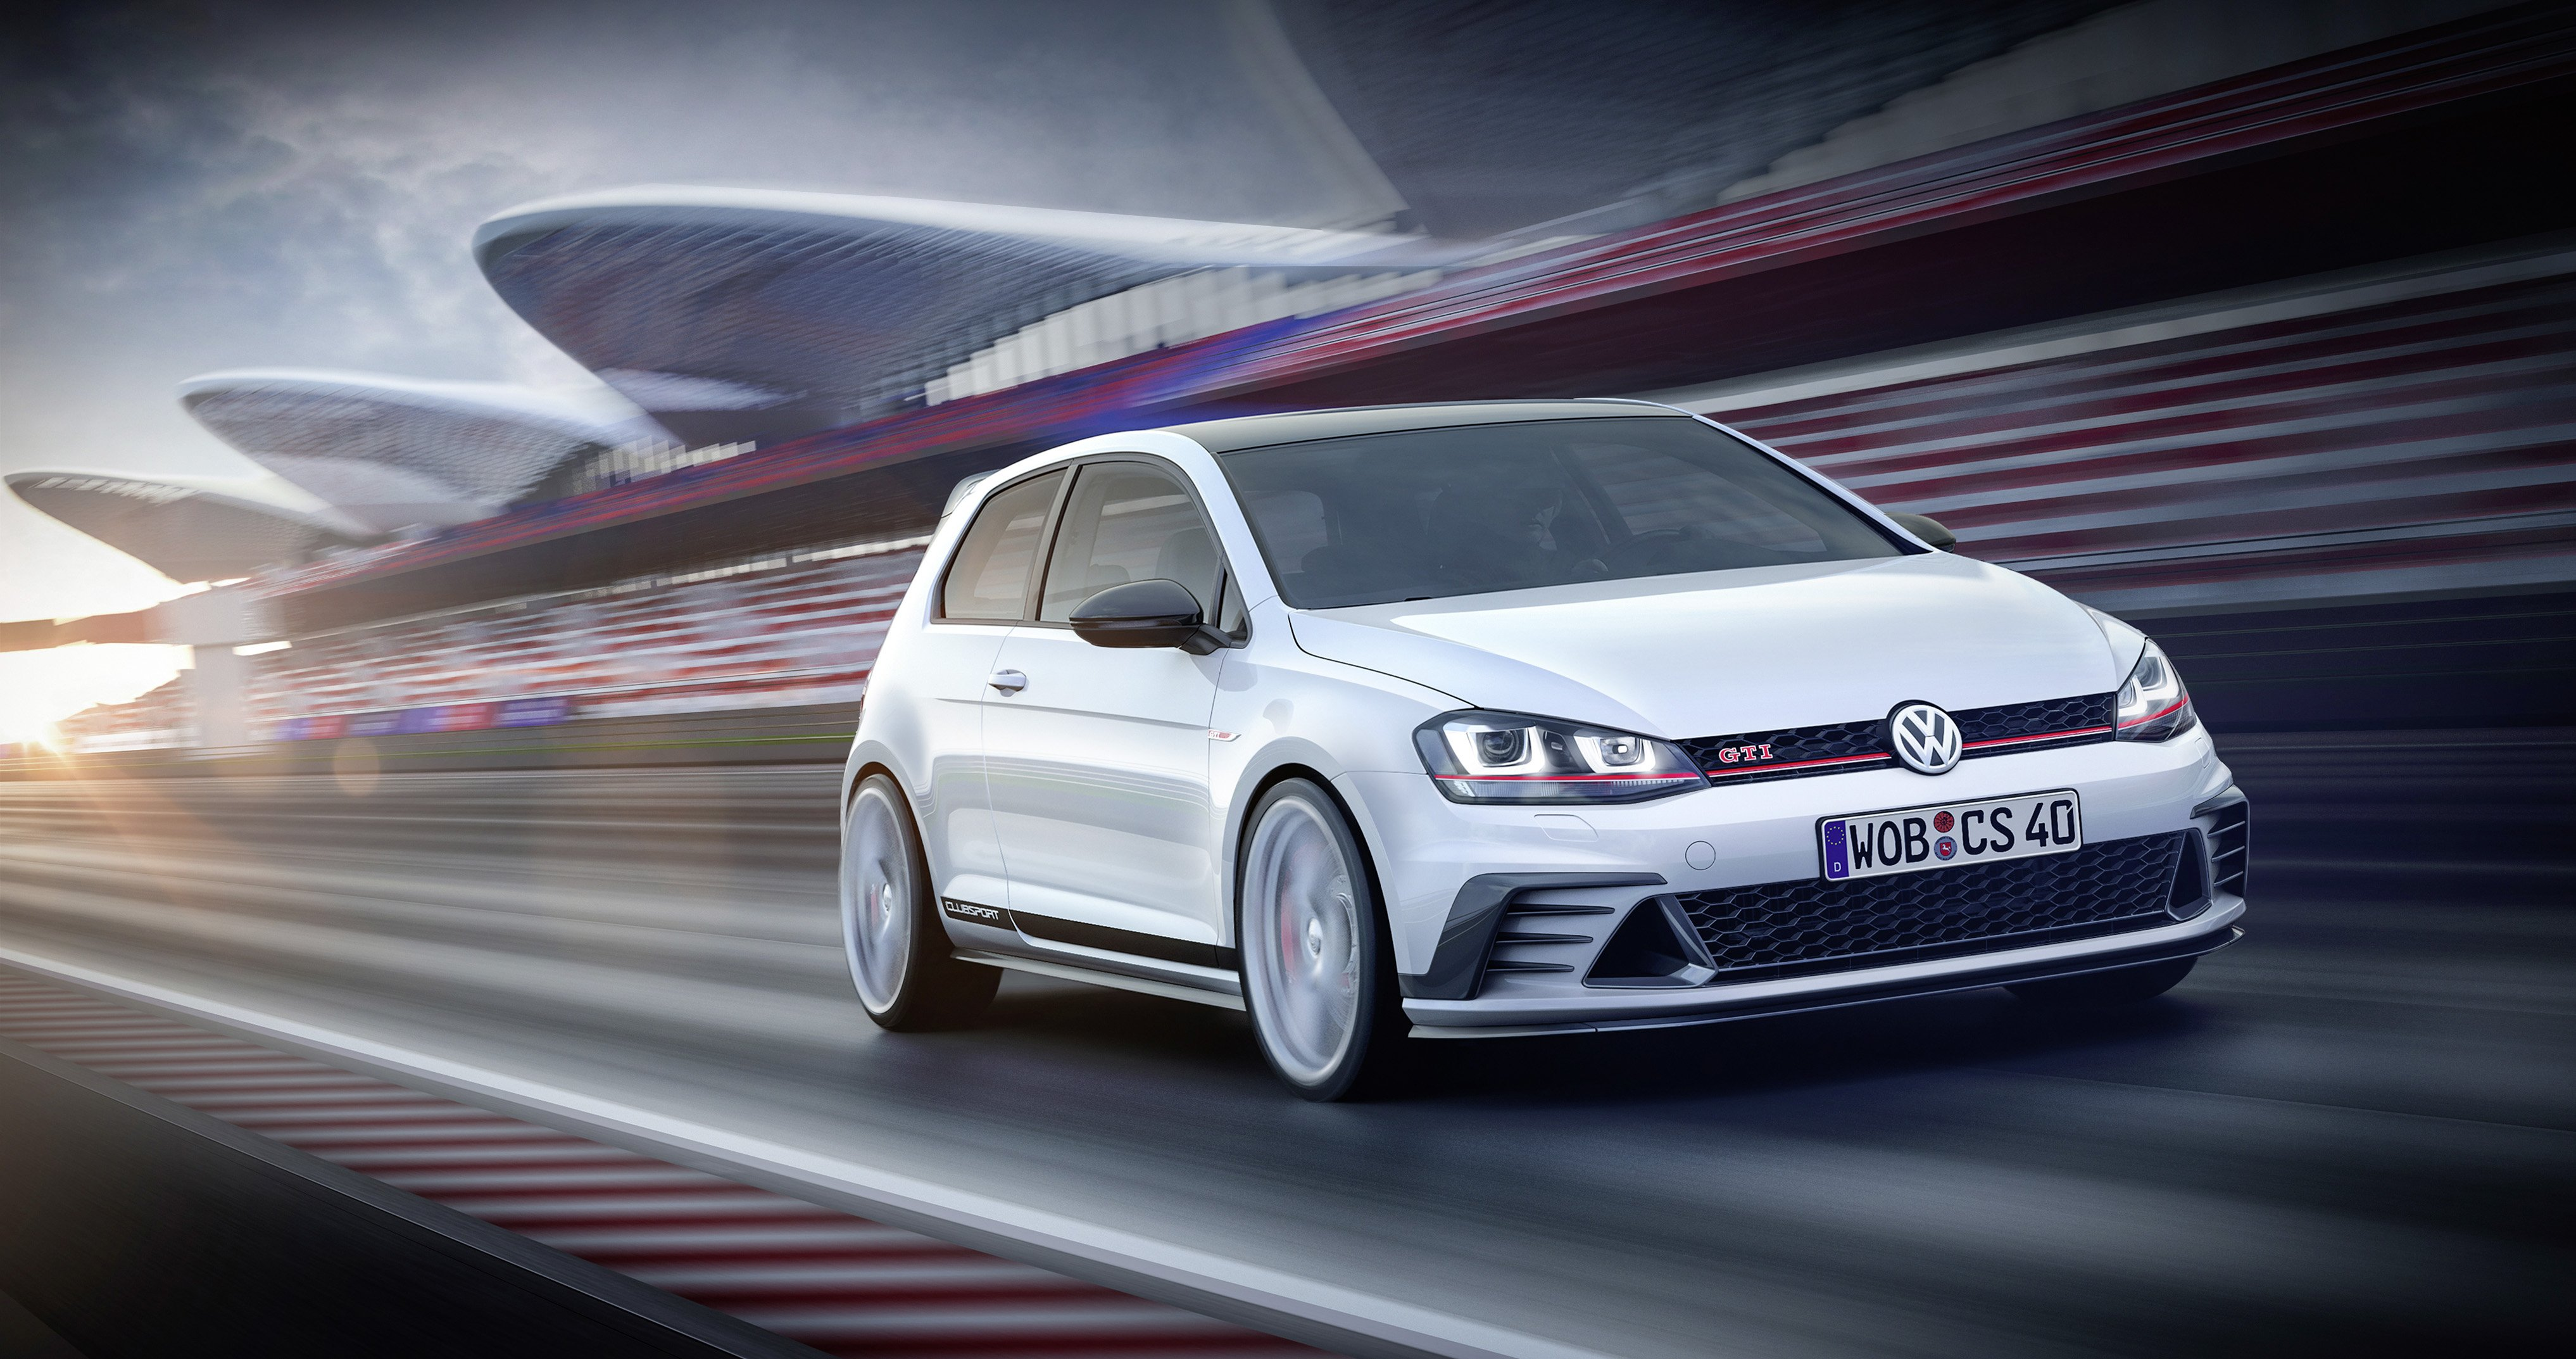 Volkswagen Golf GTI Clubsport Concept Cars 2015 Wallpaper